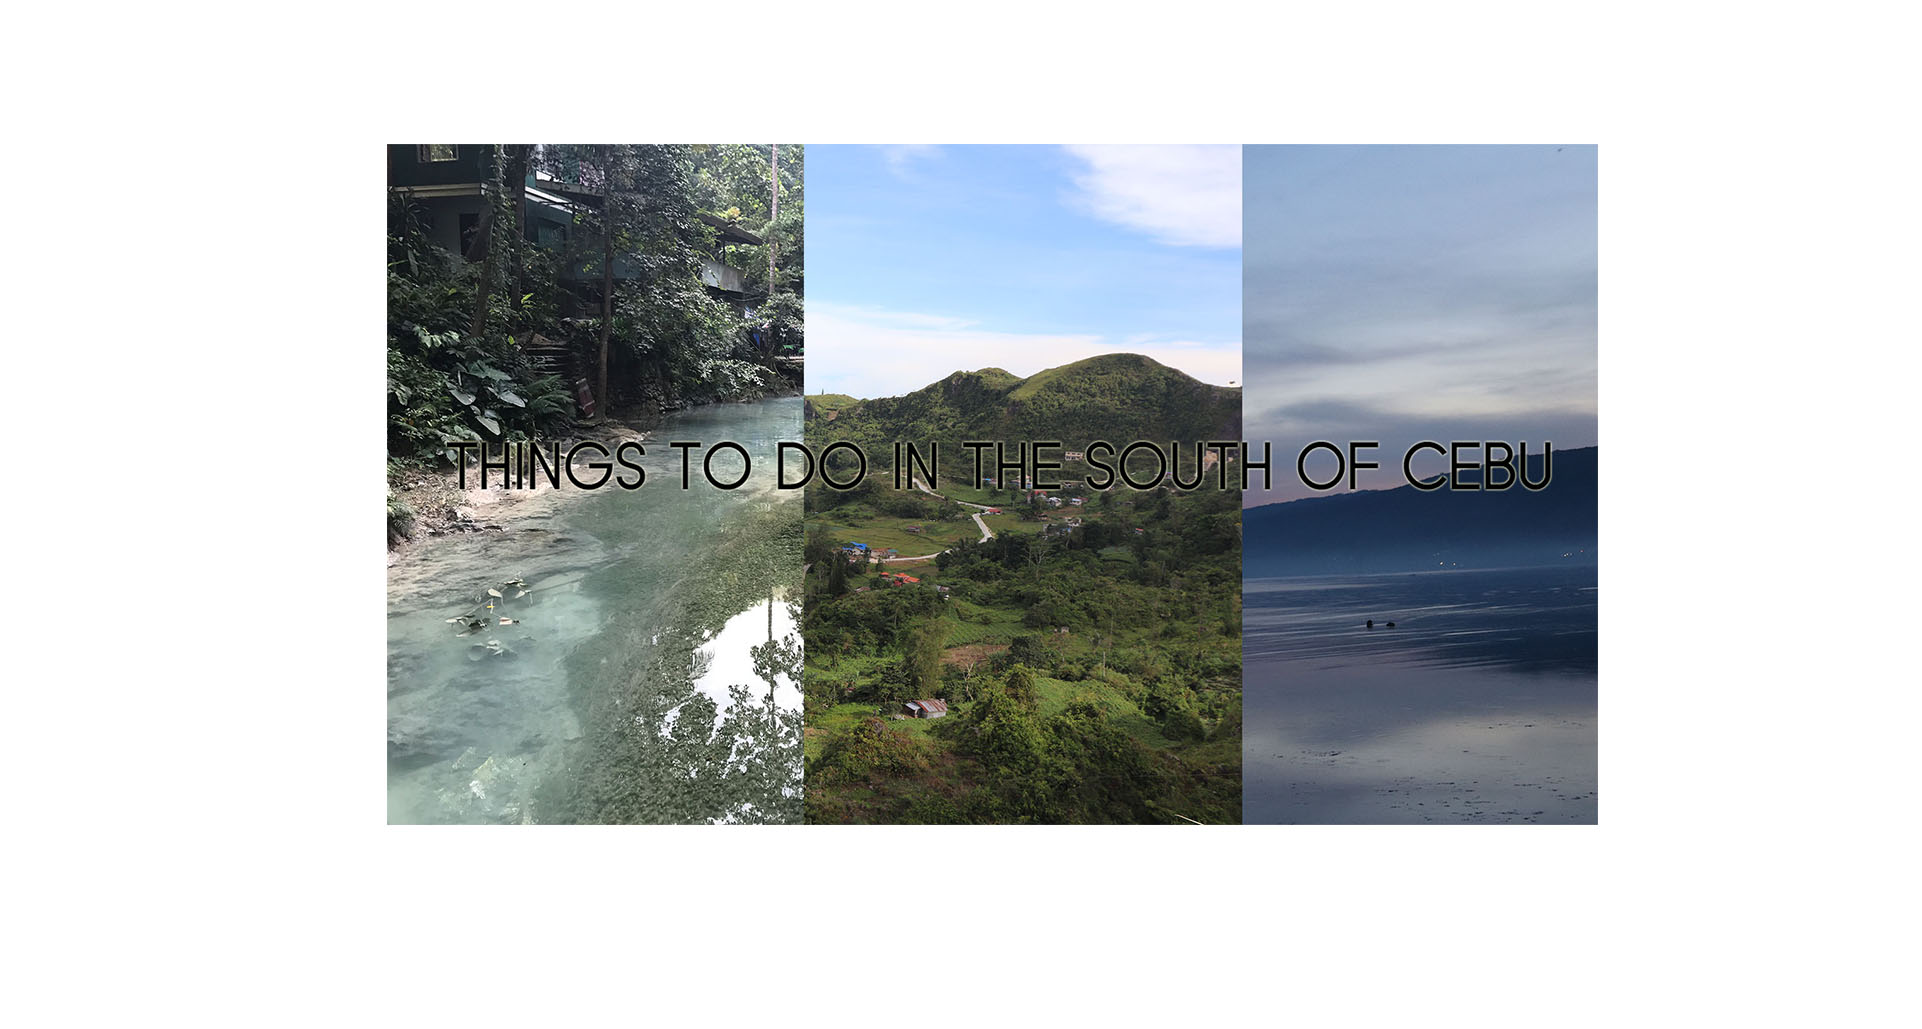 Things to do in the south if Cebu (Updated)- Best Activities/ Adventures, Sample Itinerary, Places To Eat/ Stay, Etc.